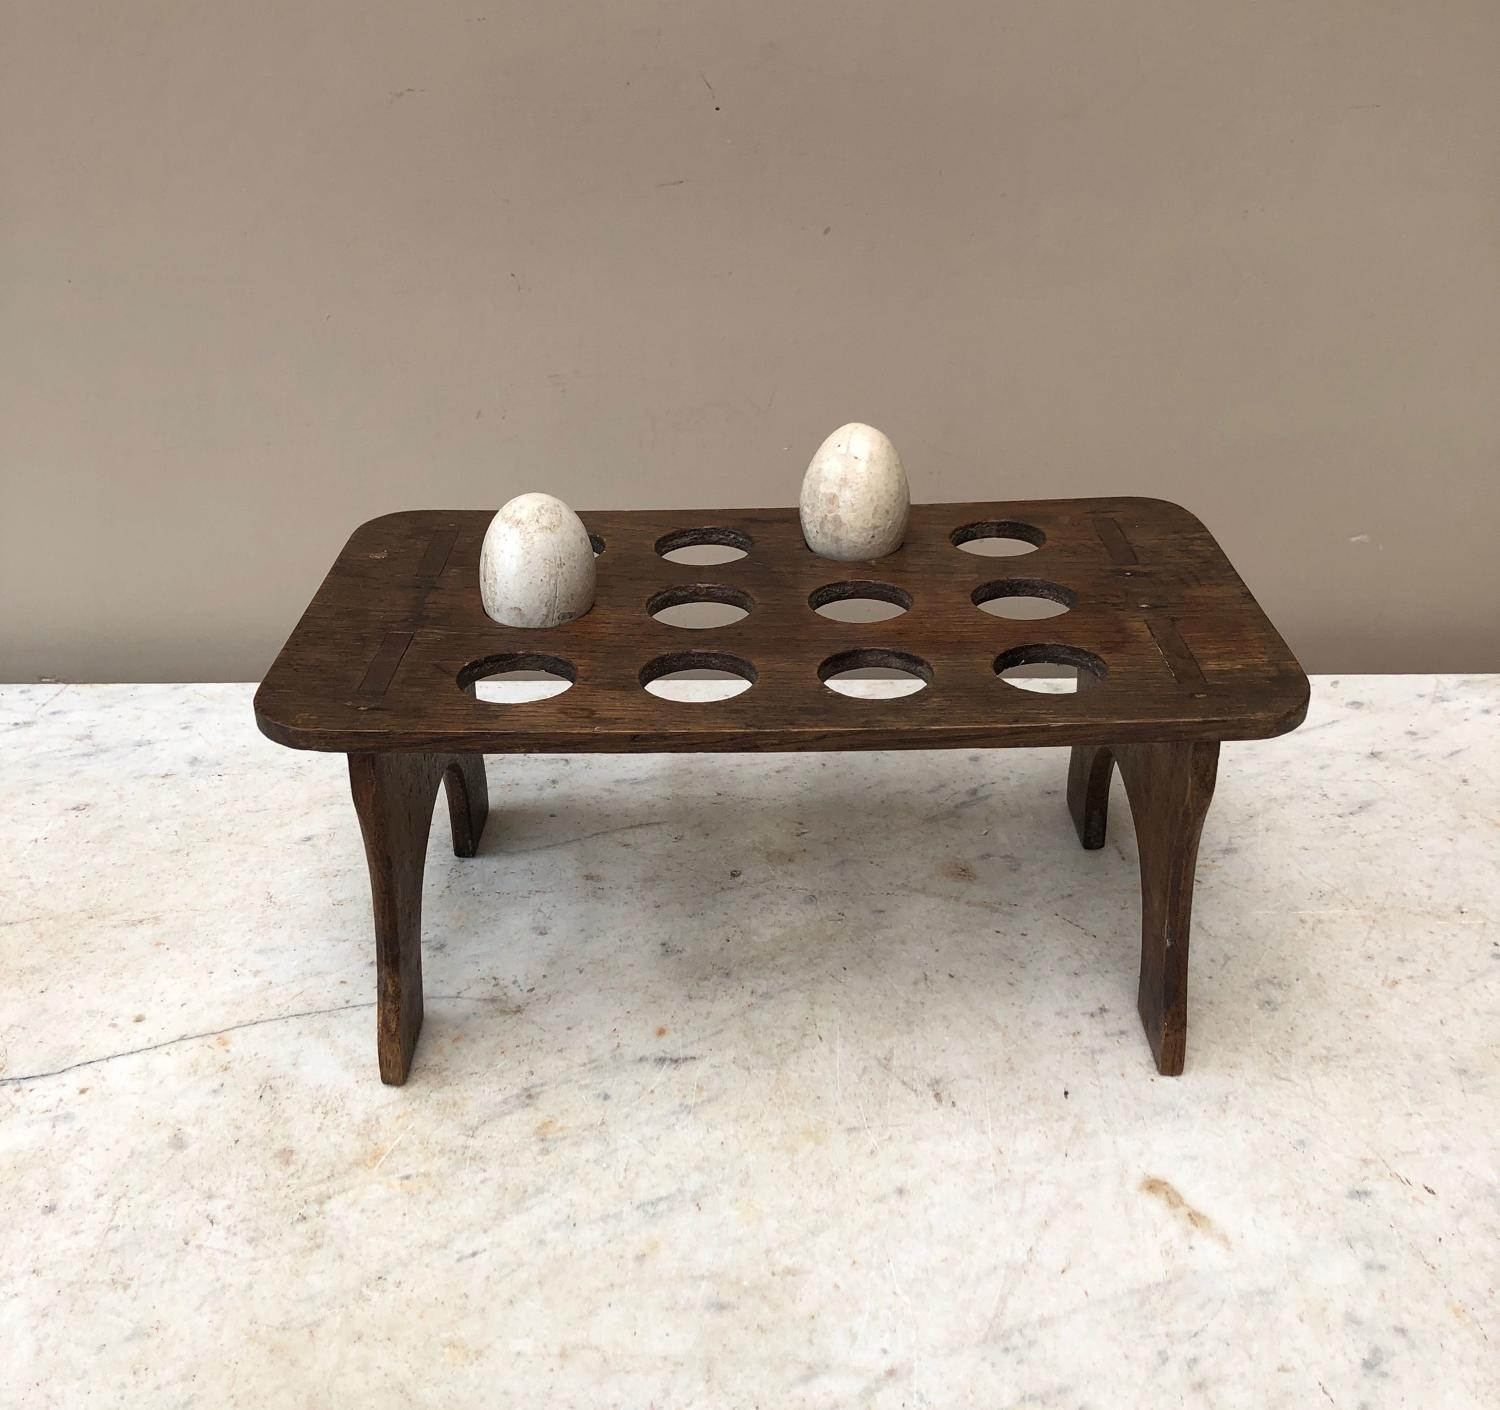 Edwardian Large Single Tier Oak Egg Rack - One Dozen Eggs